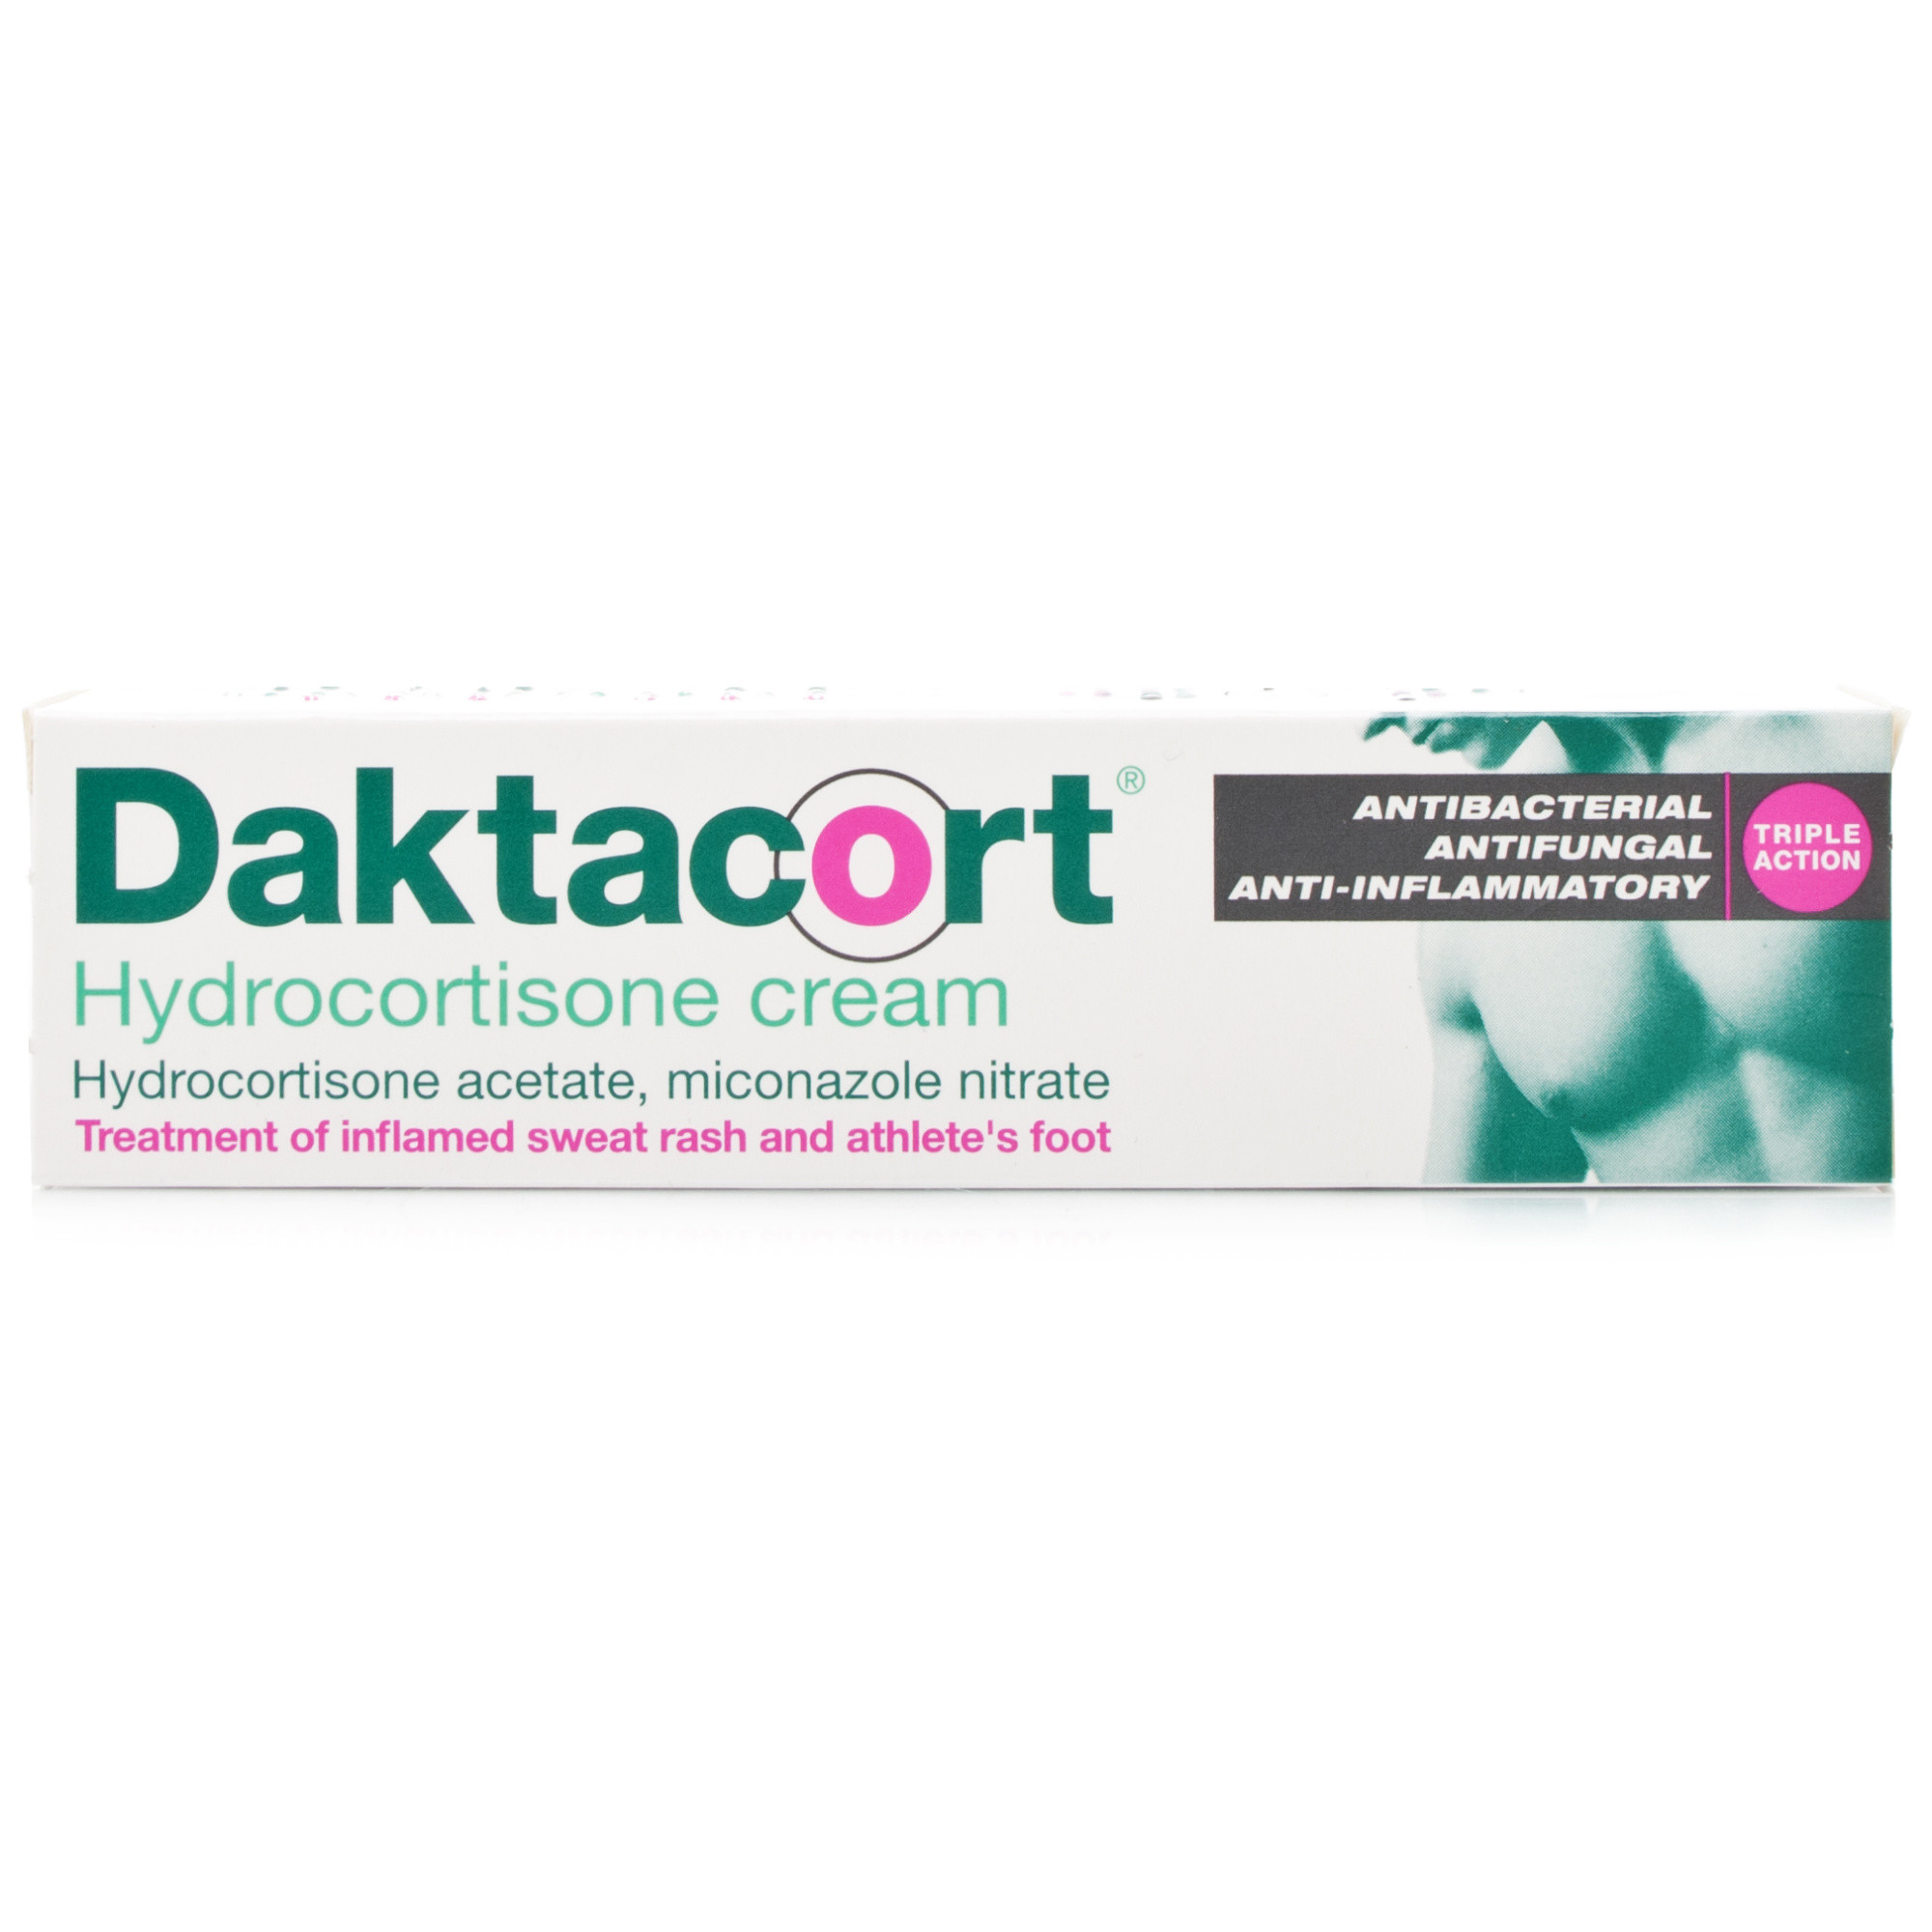 Can you get hydrocortisone over the counter